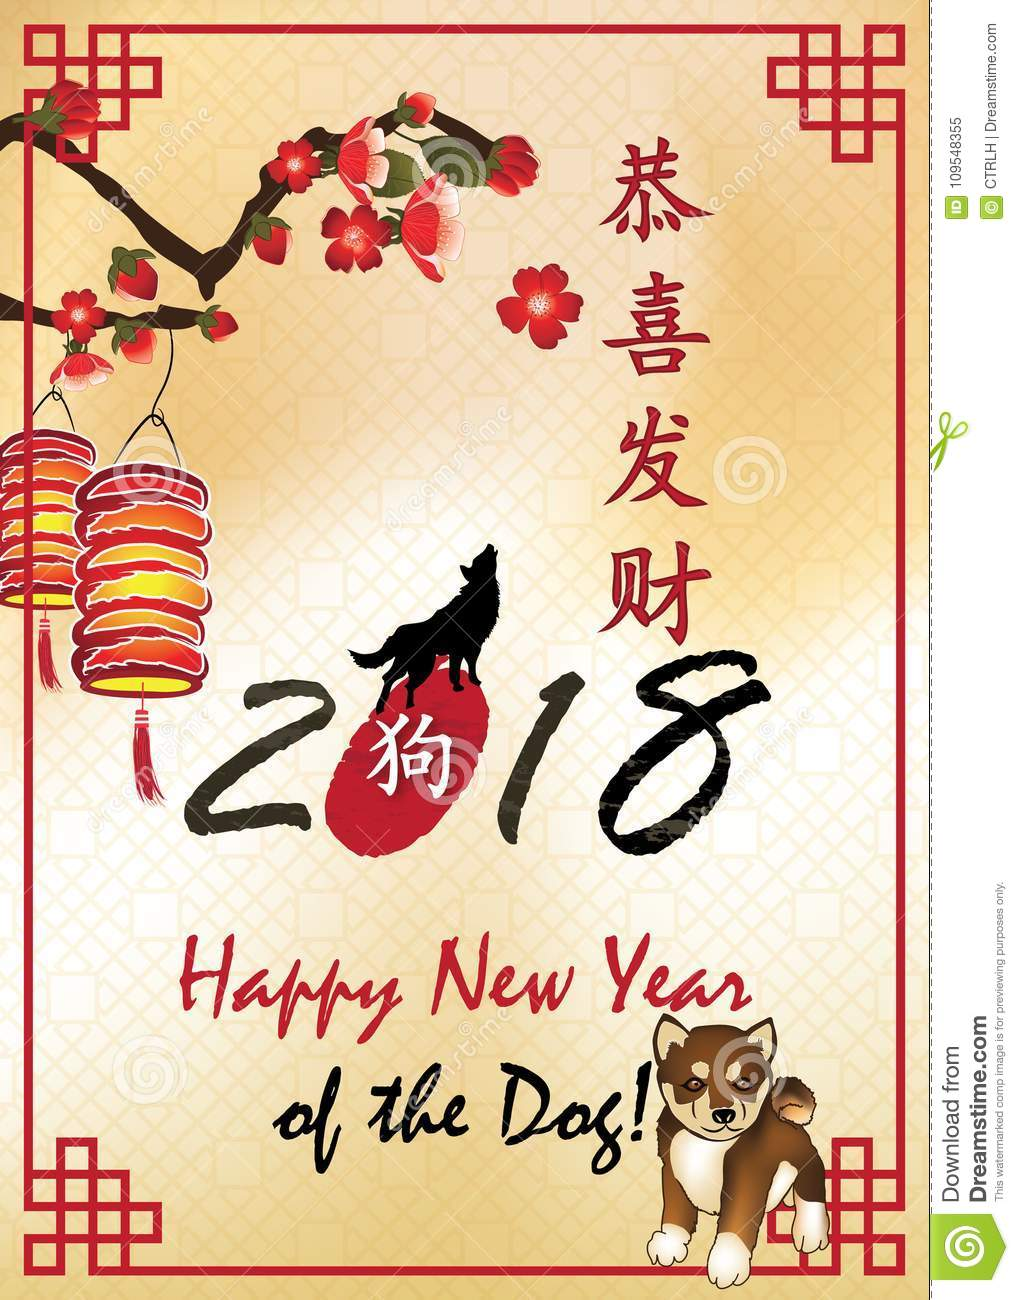 happy chinese new year of the earth dog 2018 vintage style greeting card for print